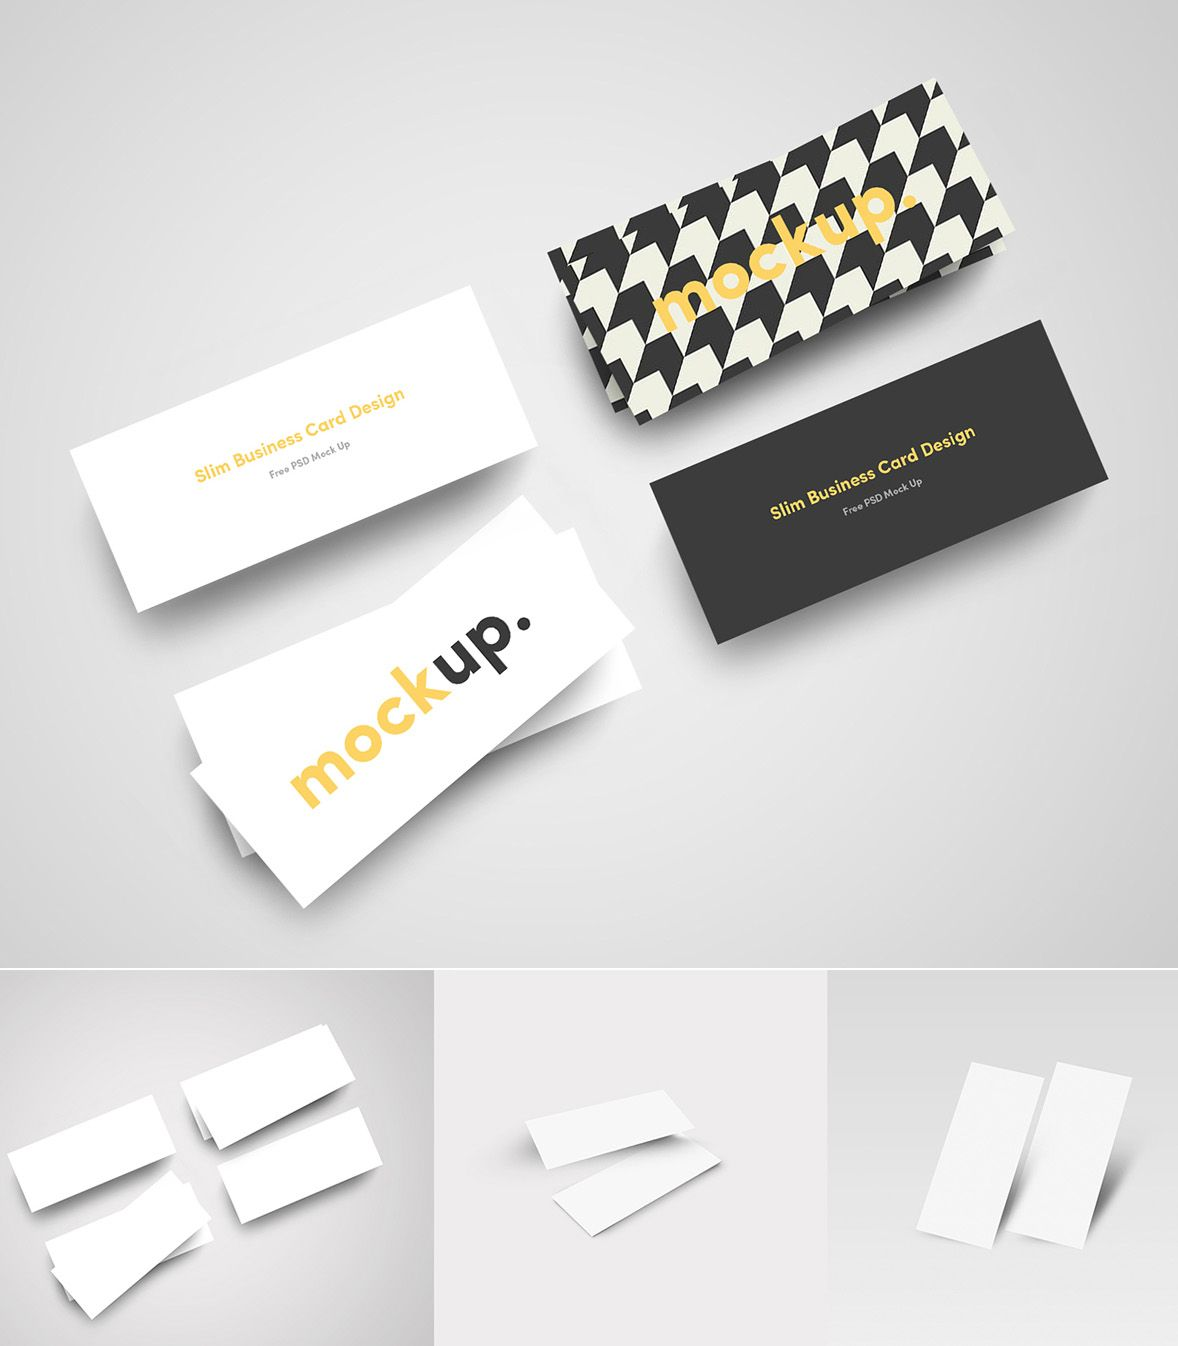 Free slim business card mockup freepsdfiles freepsdmockups free slim business card mockup freepsdfiles freepsdmockups freebies psdmockups cheaphphosting Image collections